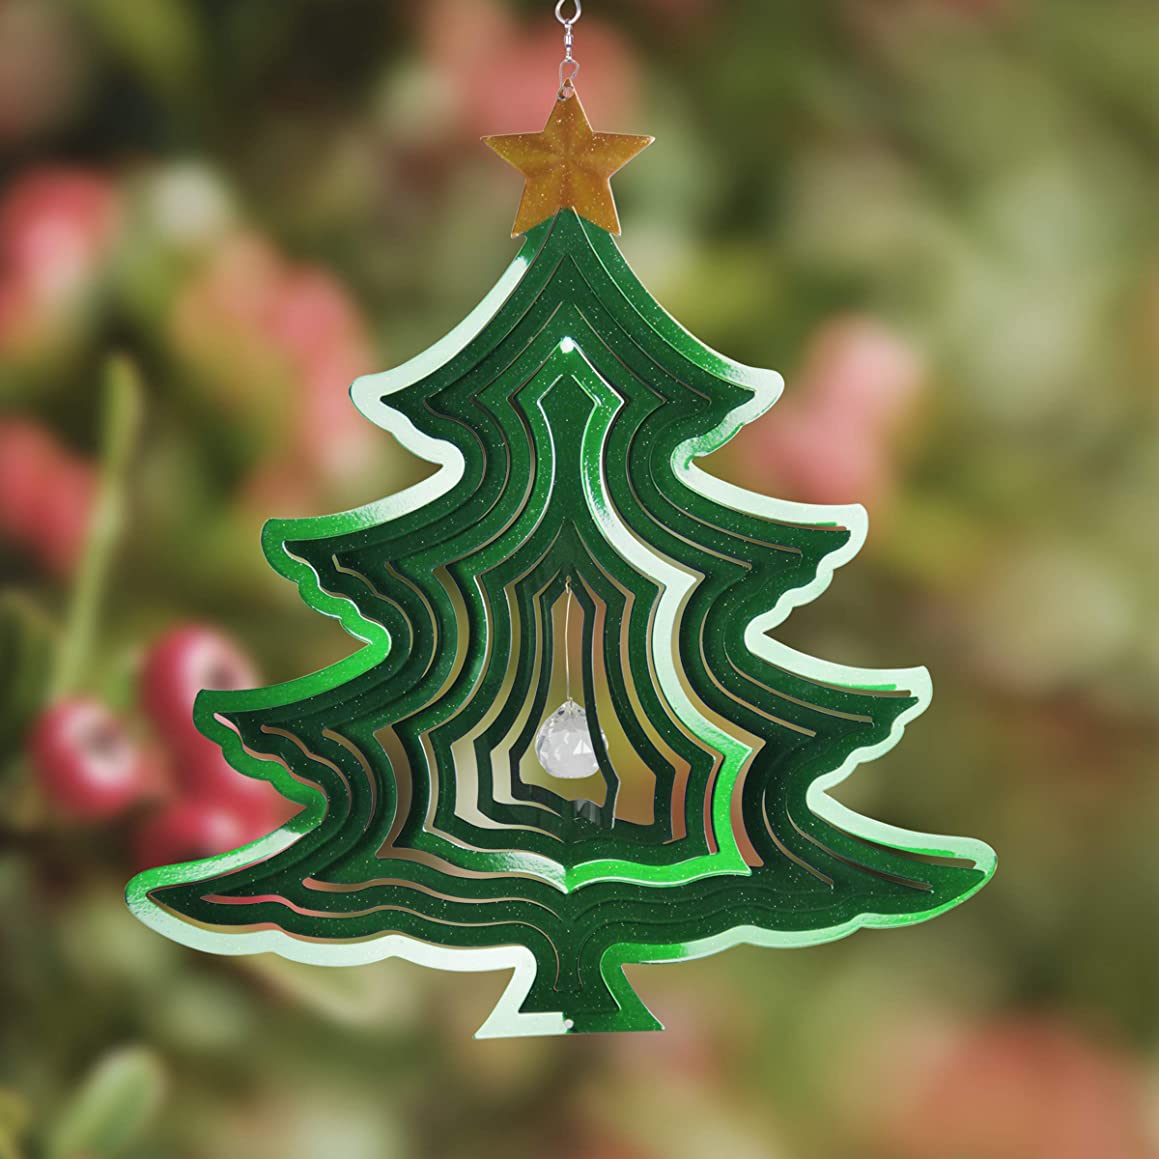 "Exhart Christmas Tree Spinner – Christmas Tree Wind Spinner, Metal Wind Spinner, Kinetic Art Holiday Décor Garden Wind Spinners (15"" x 8"" x 18.8"")"